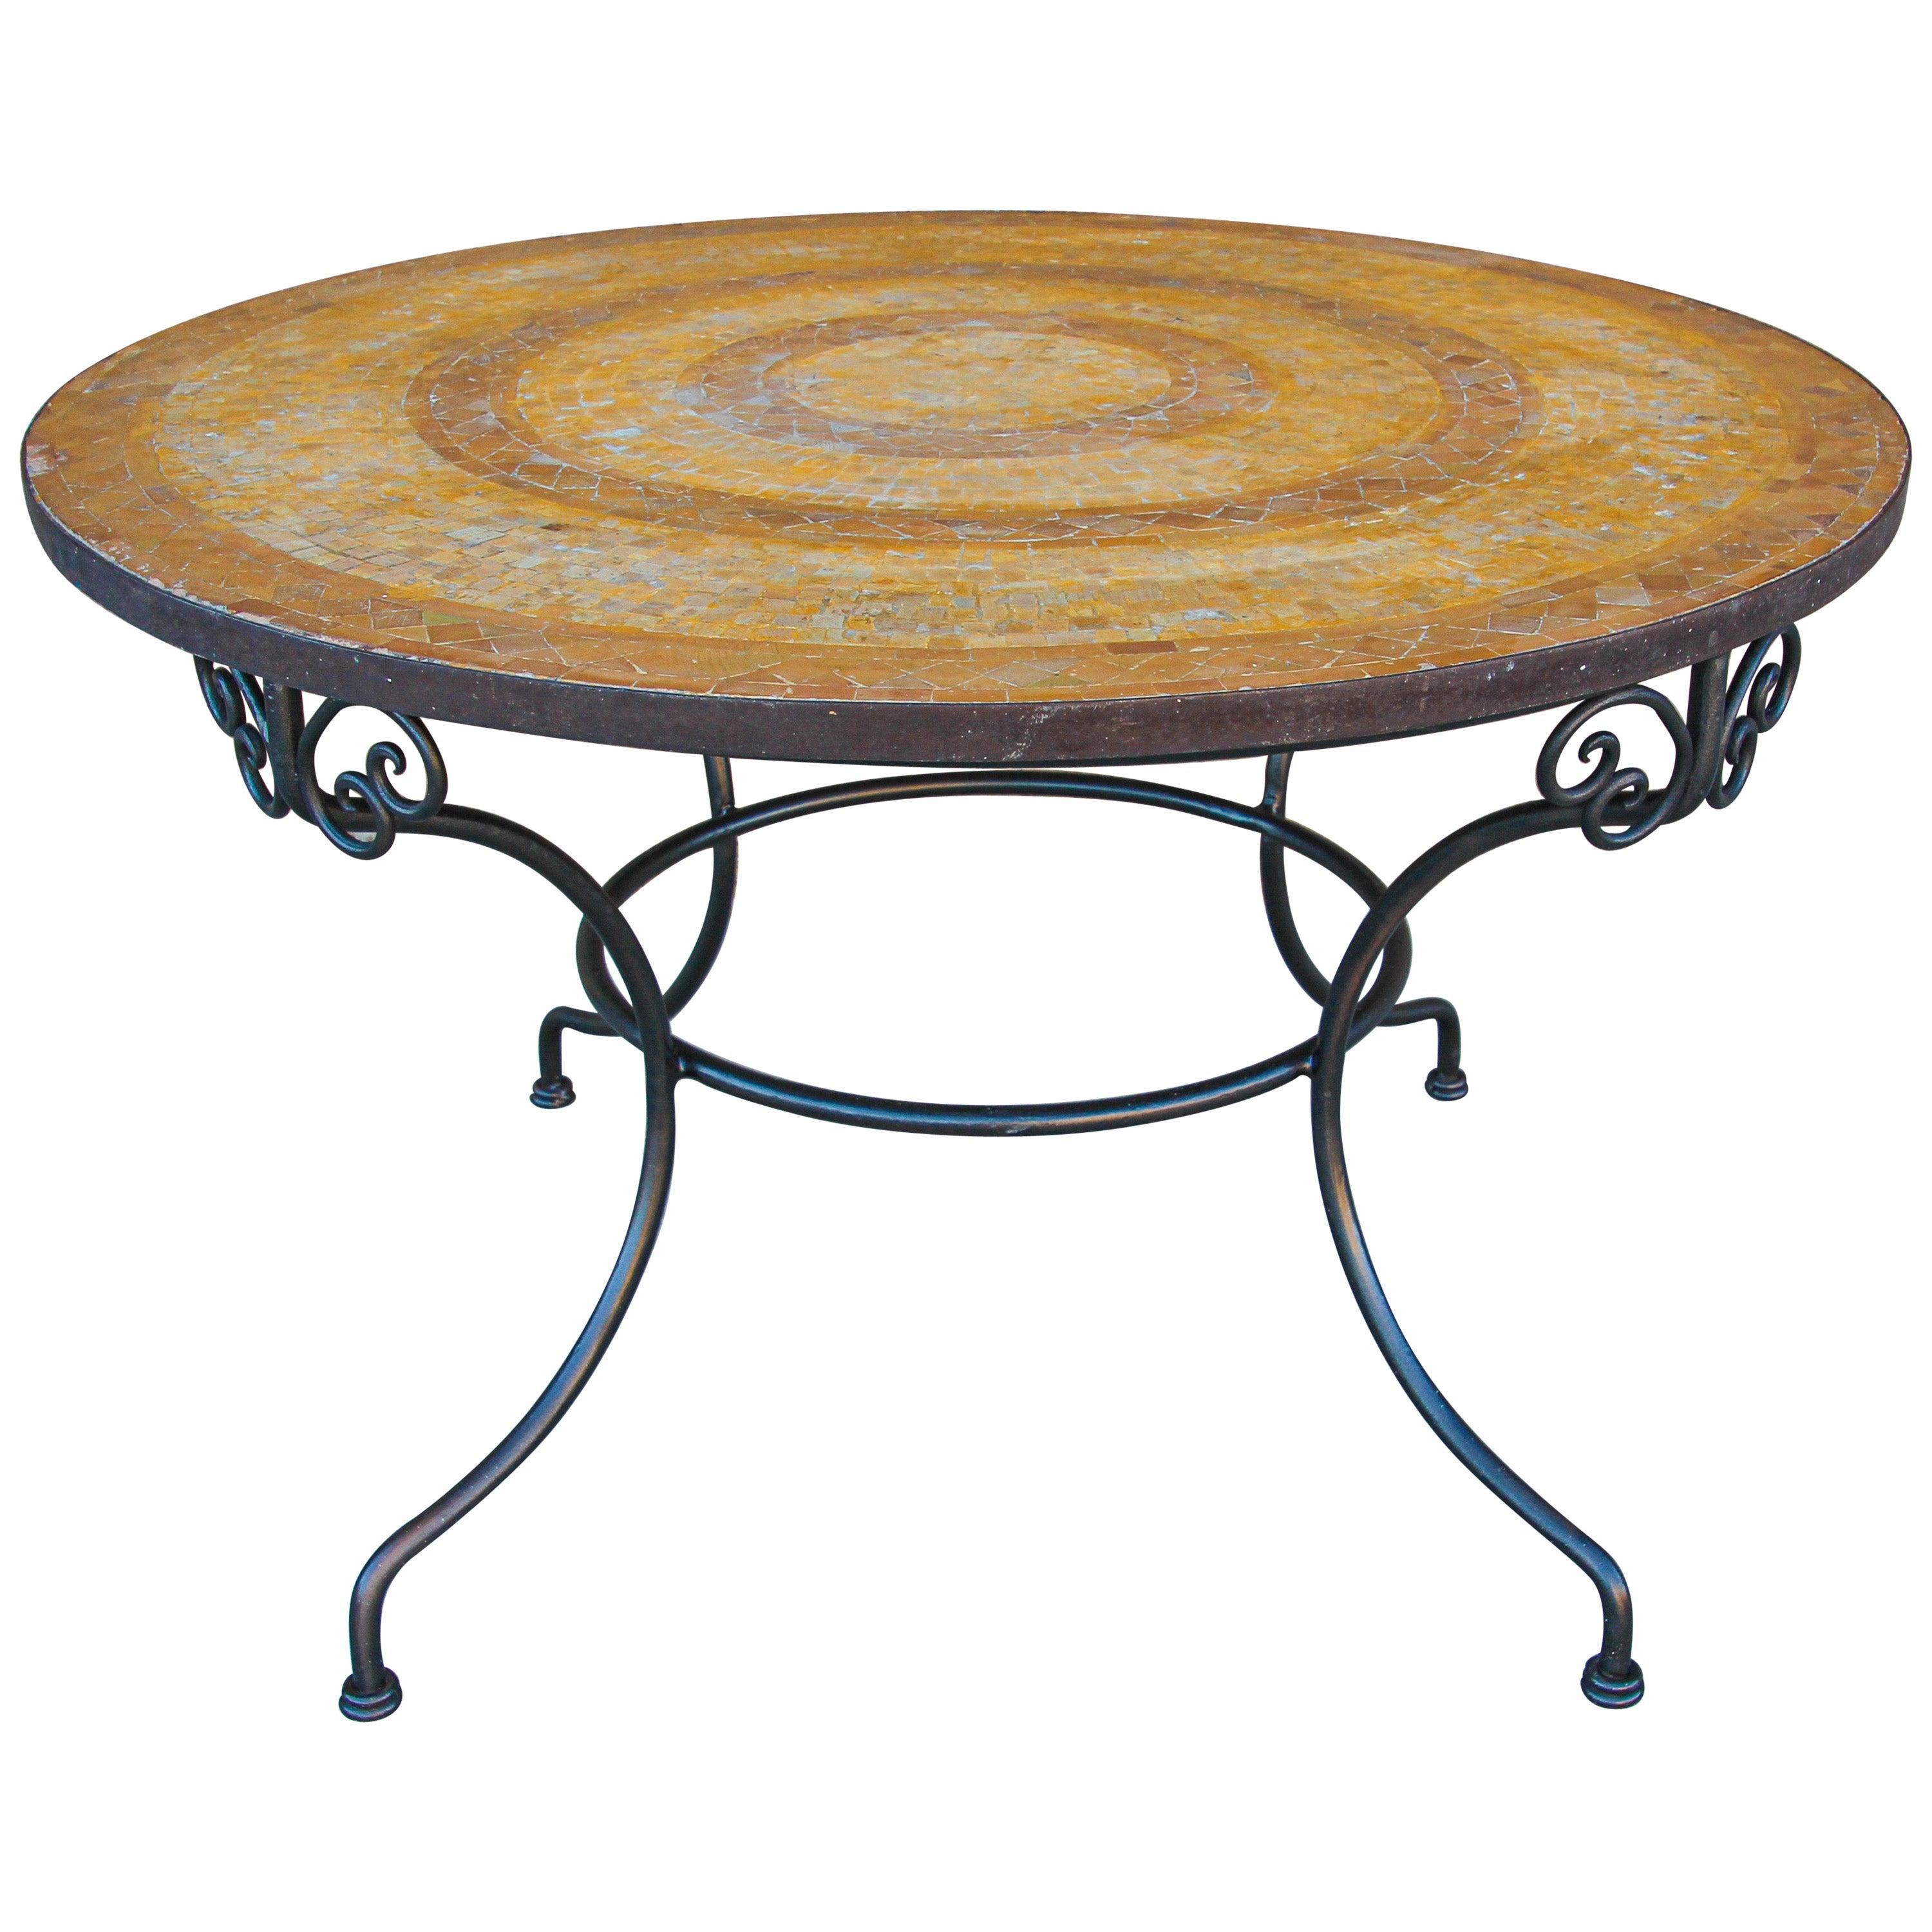 Moroccan Vintage Mosaic Stone Inlaid Table Indoor or Outdoor